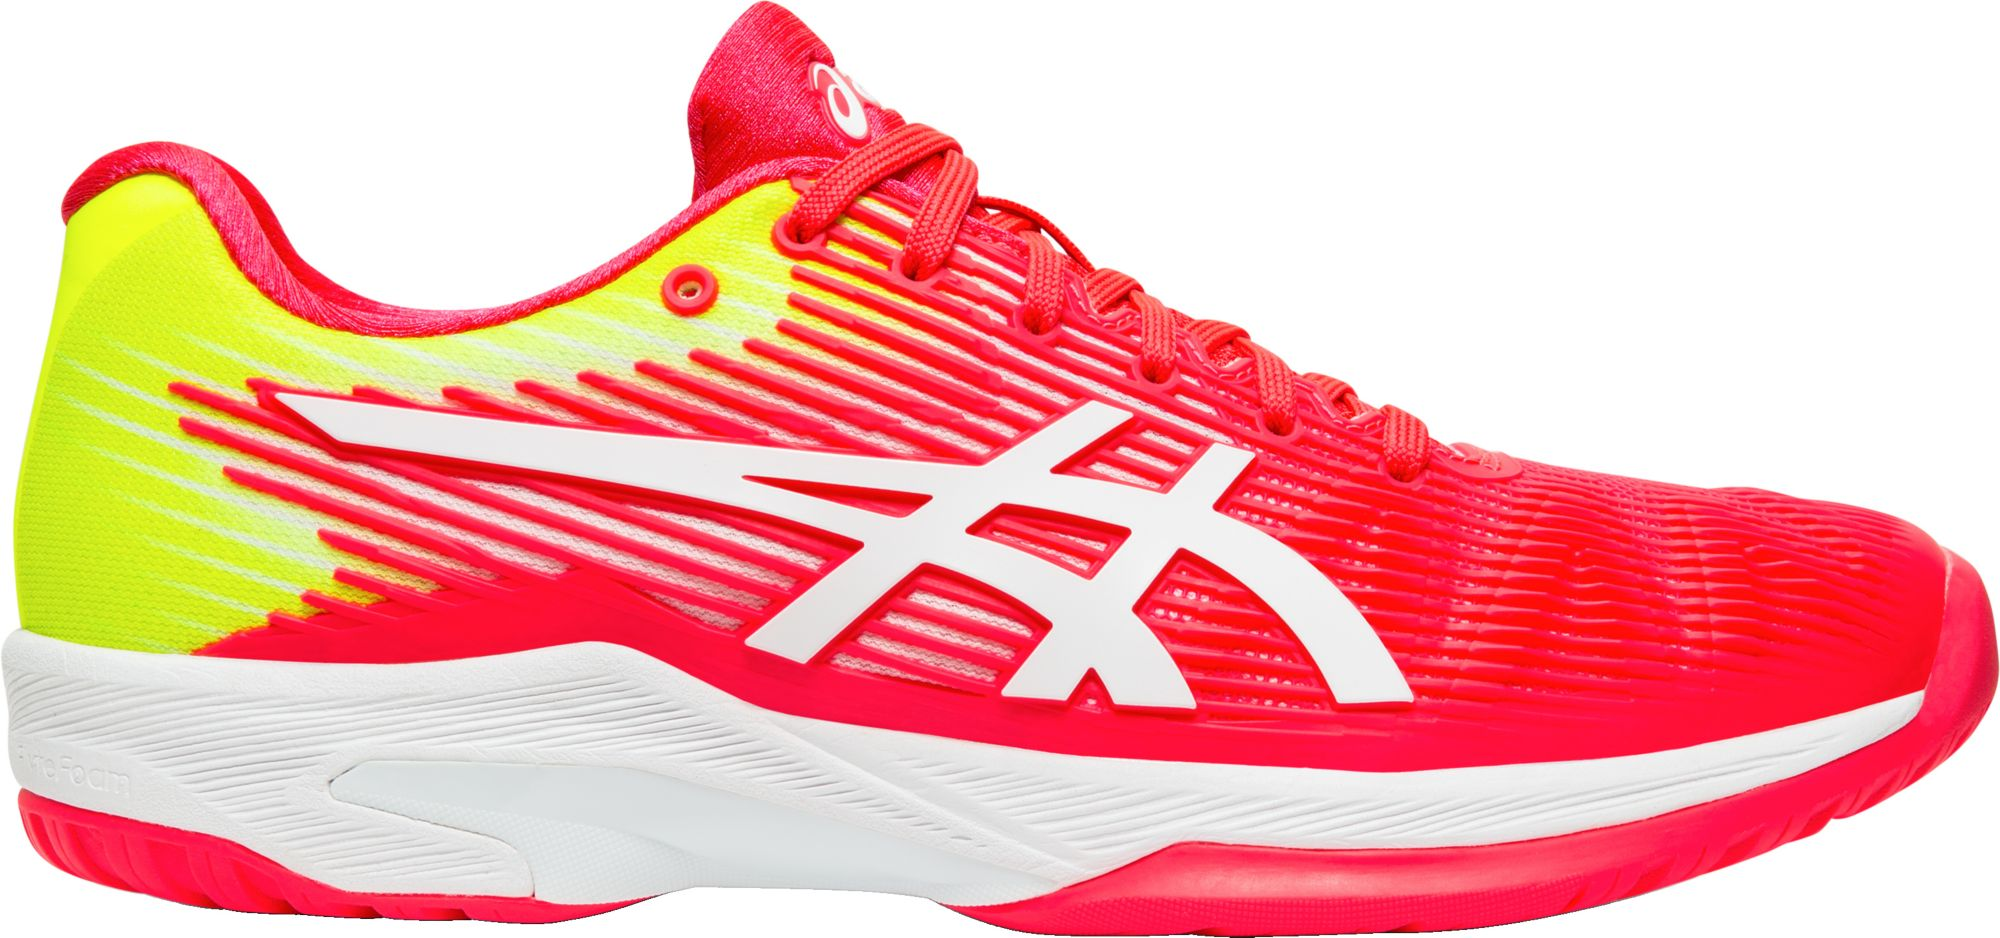 asics shoes womens wide neck